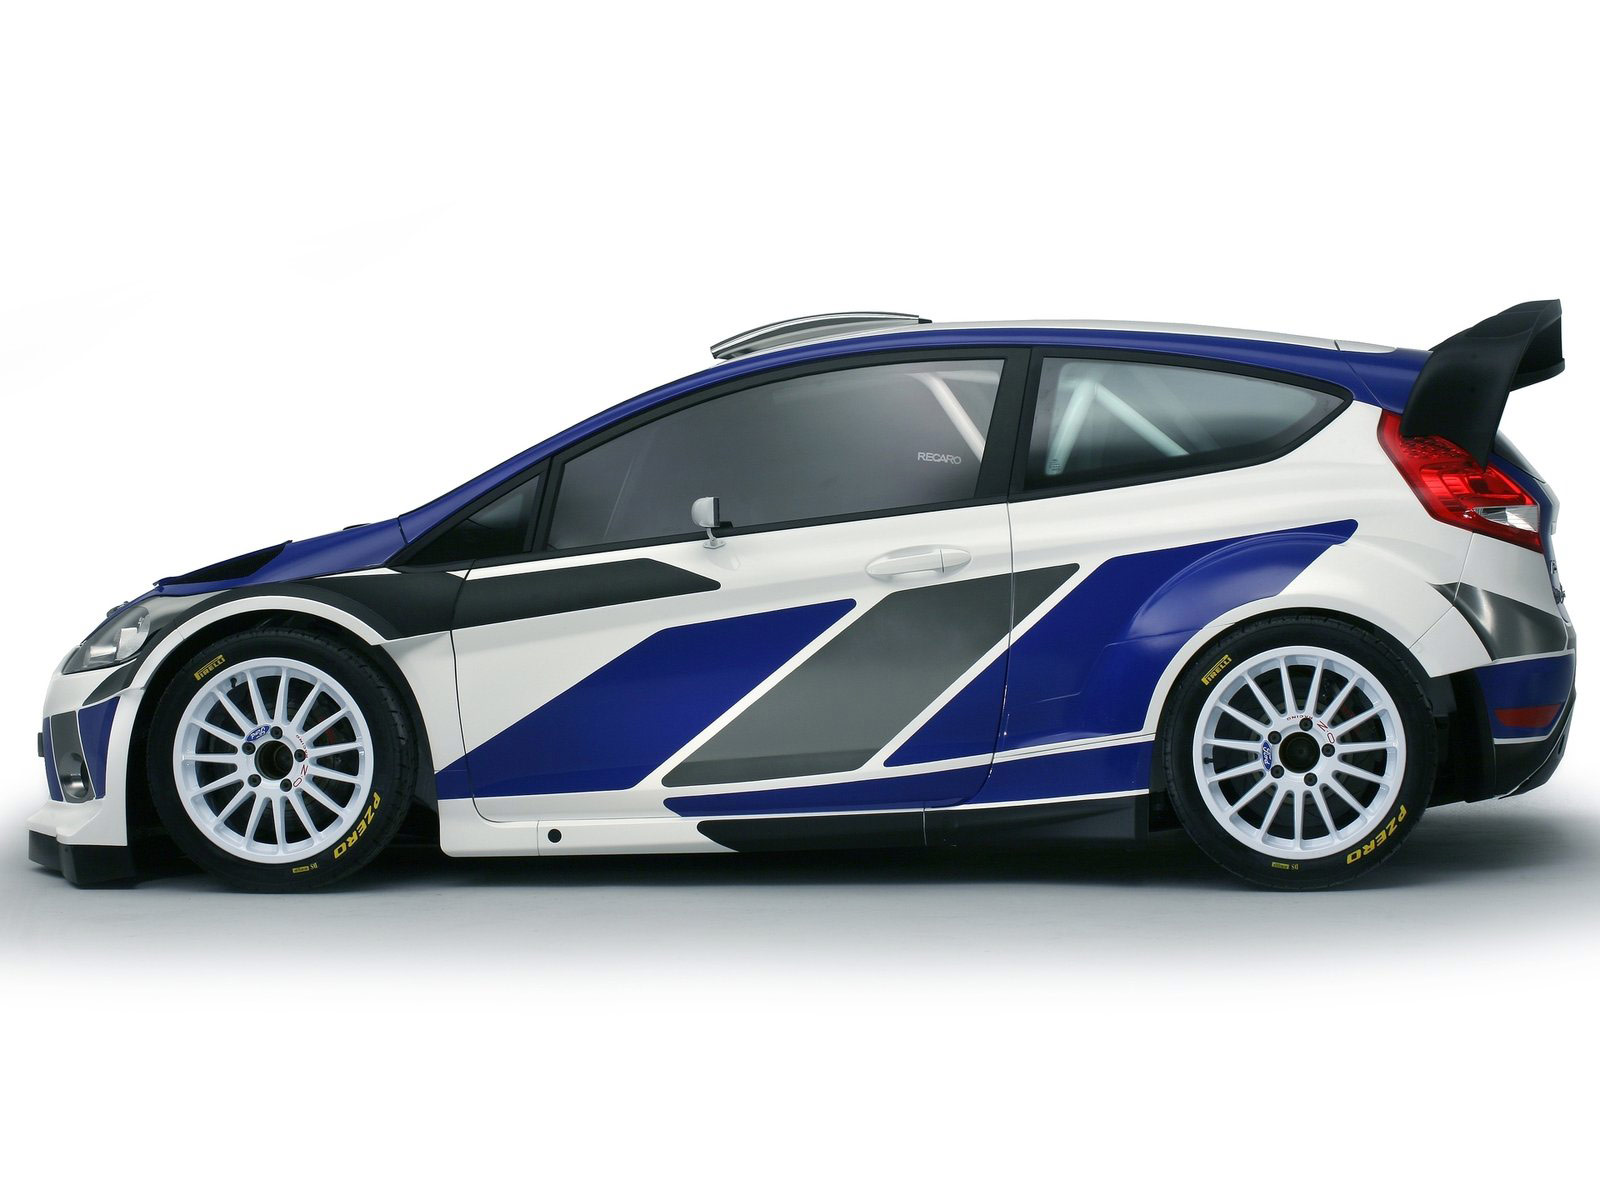 2011 ford fiesta rs wrc car wallpaper accident lawyers auto trends magazine. Black Bedroom Furniture Sets. Home Design Ideas